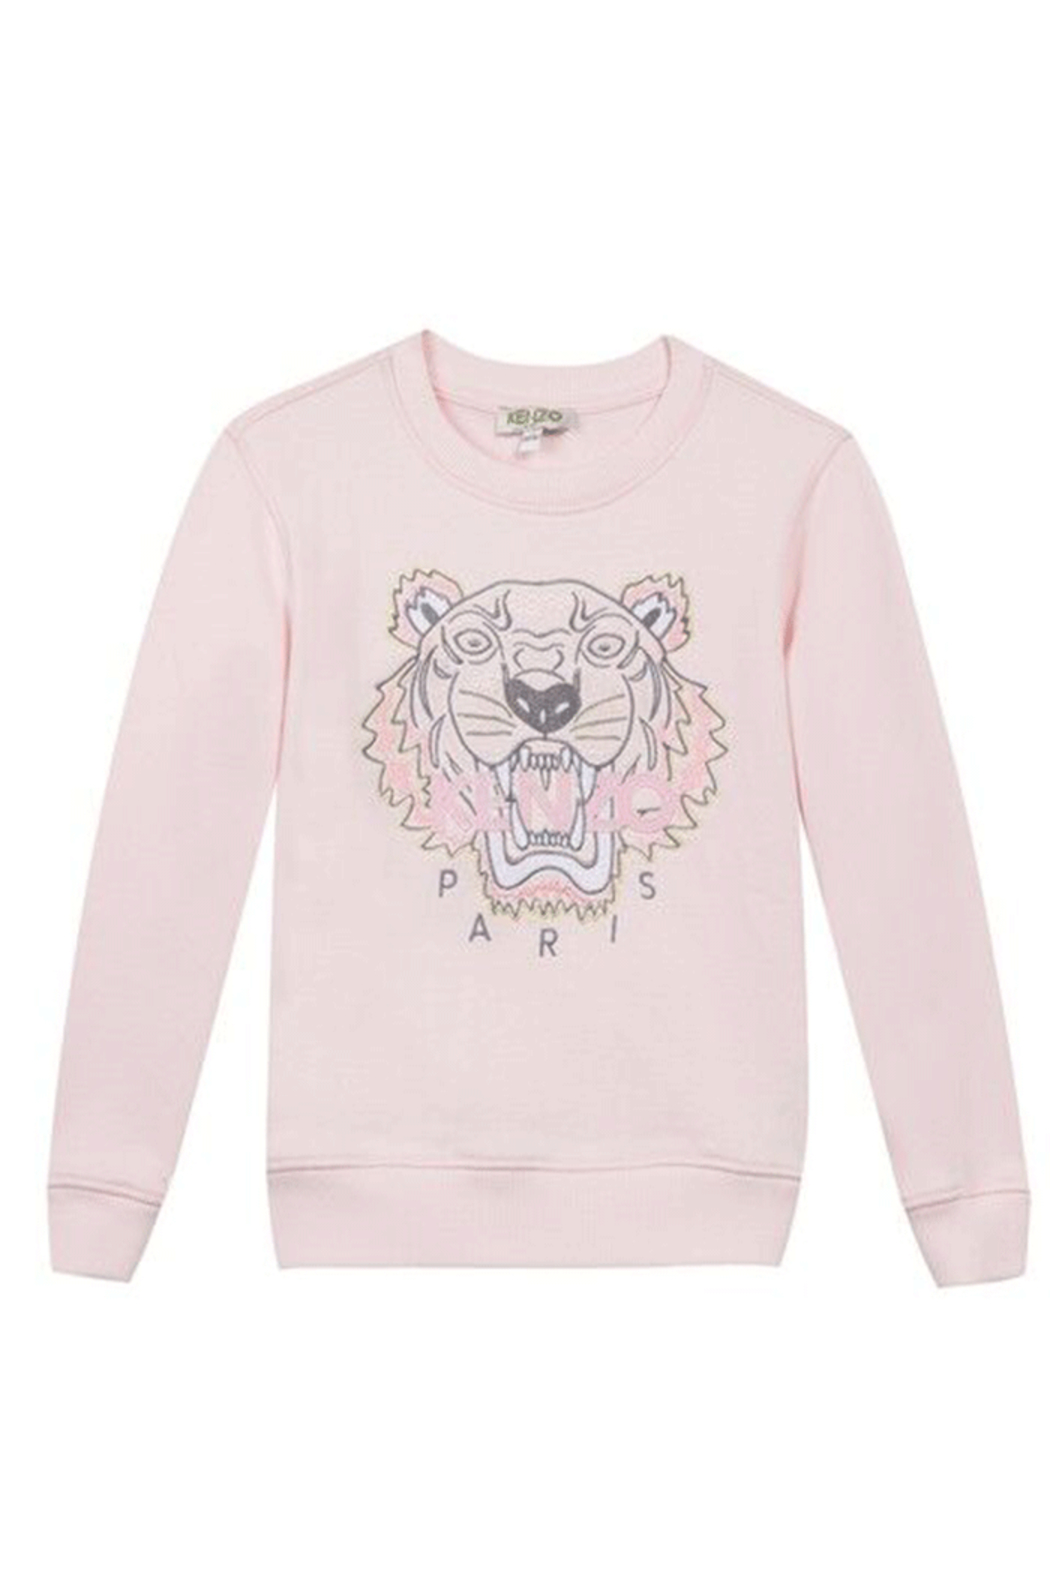 9f7767cf9b91 Kenzo 2-4Y Tiger Face Sweatshirt from New York City by Mon Petit ...